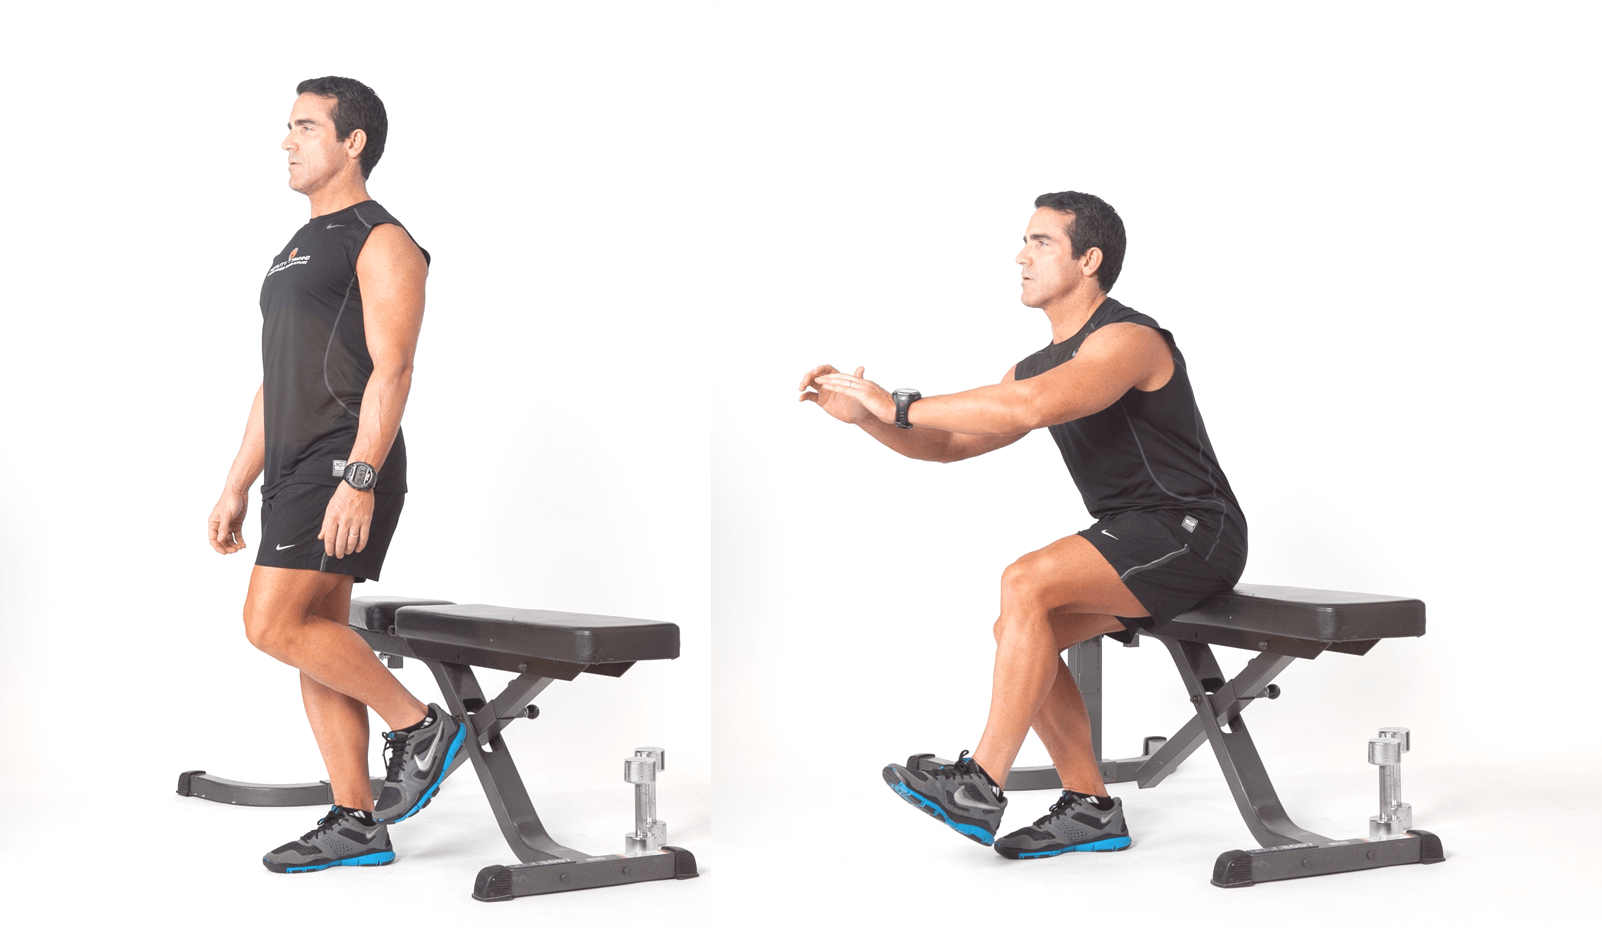 A fit man performing a single leg bench squat